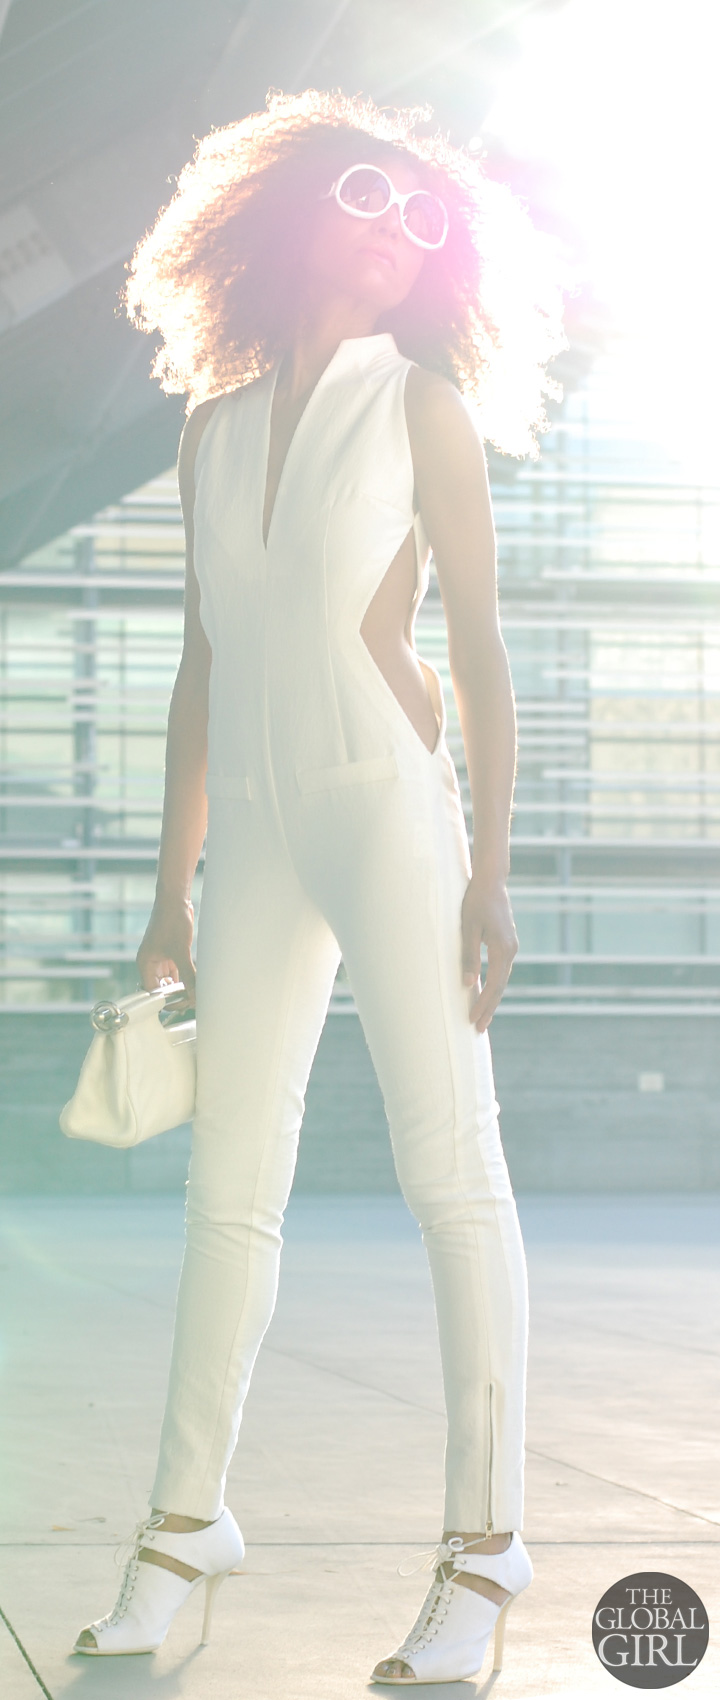 Ndoema channels Sun Girl Selah Burke in all white look: cutout jumpsuit from Son Jung Wang Spring 2014 runway collection | White frame oversized sunglasses by Balenciaga | White cutout lace-up sandals by Helmut Lang | White leather bag by Prada.